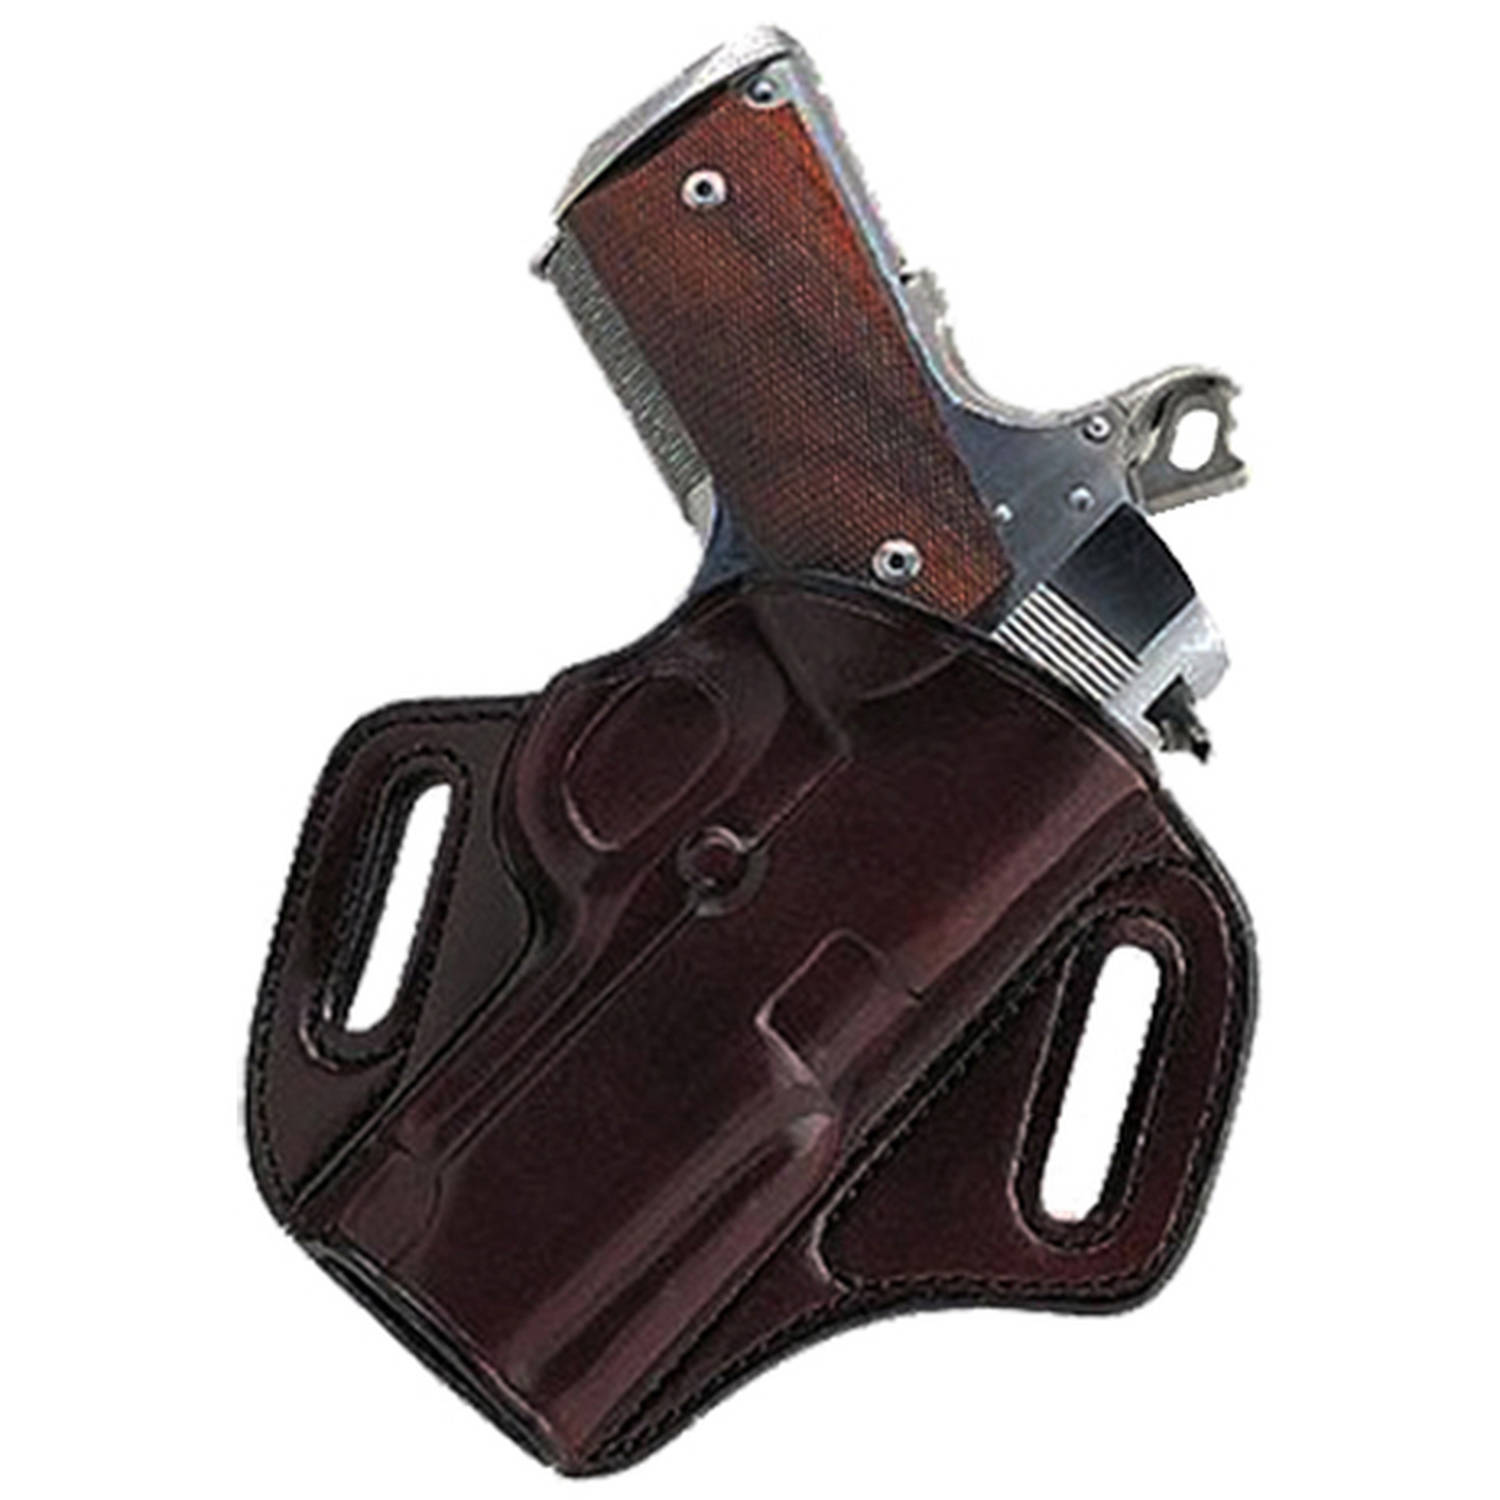 "Galco CCP202H Concealed Carry 202H Fits Belt Width 1"" 1.75"" Havana Brown Leath by GALCO INTERNATIONAL"